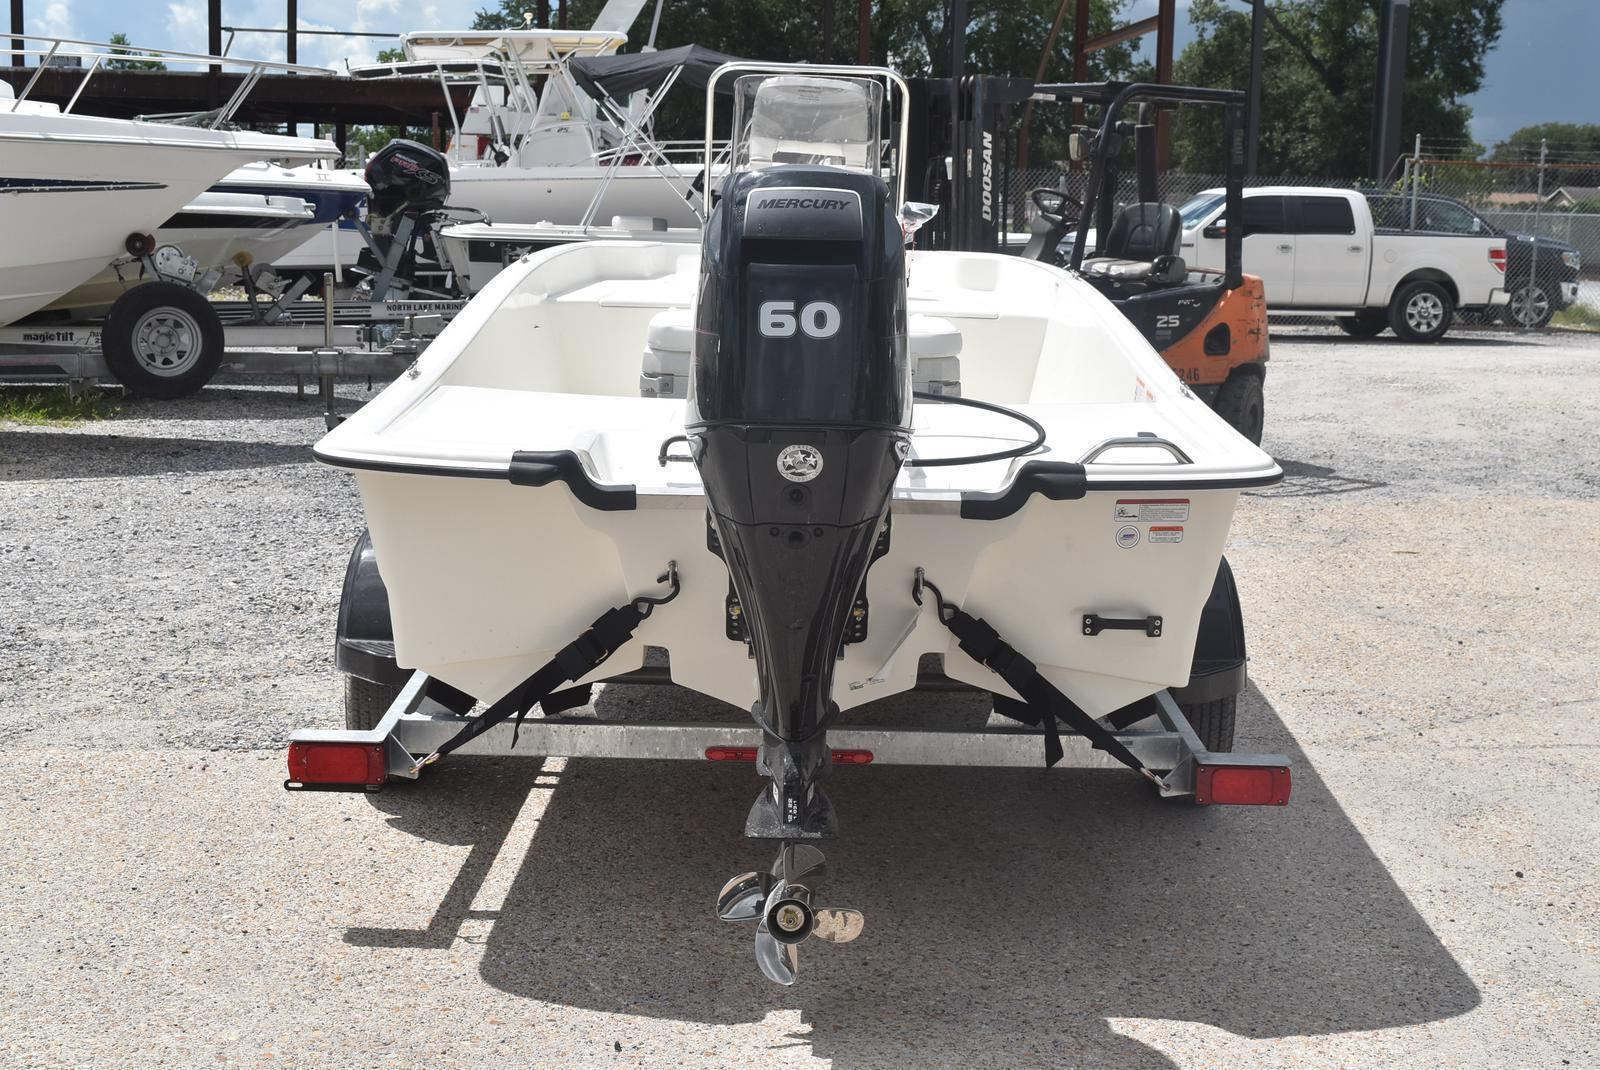 2020 Mako boat for sale, model of the boat is Pro Skiff 17, 75 ELPT & Image # 613 of 702